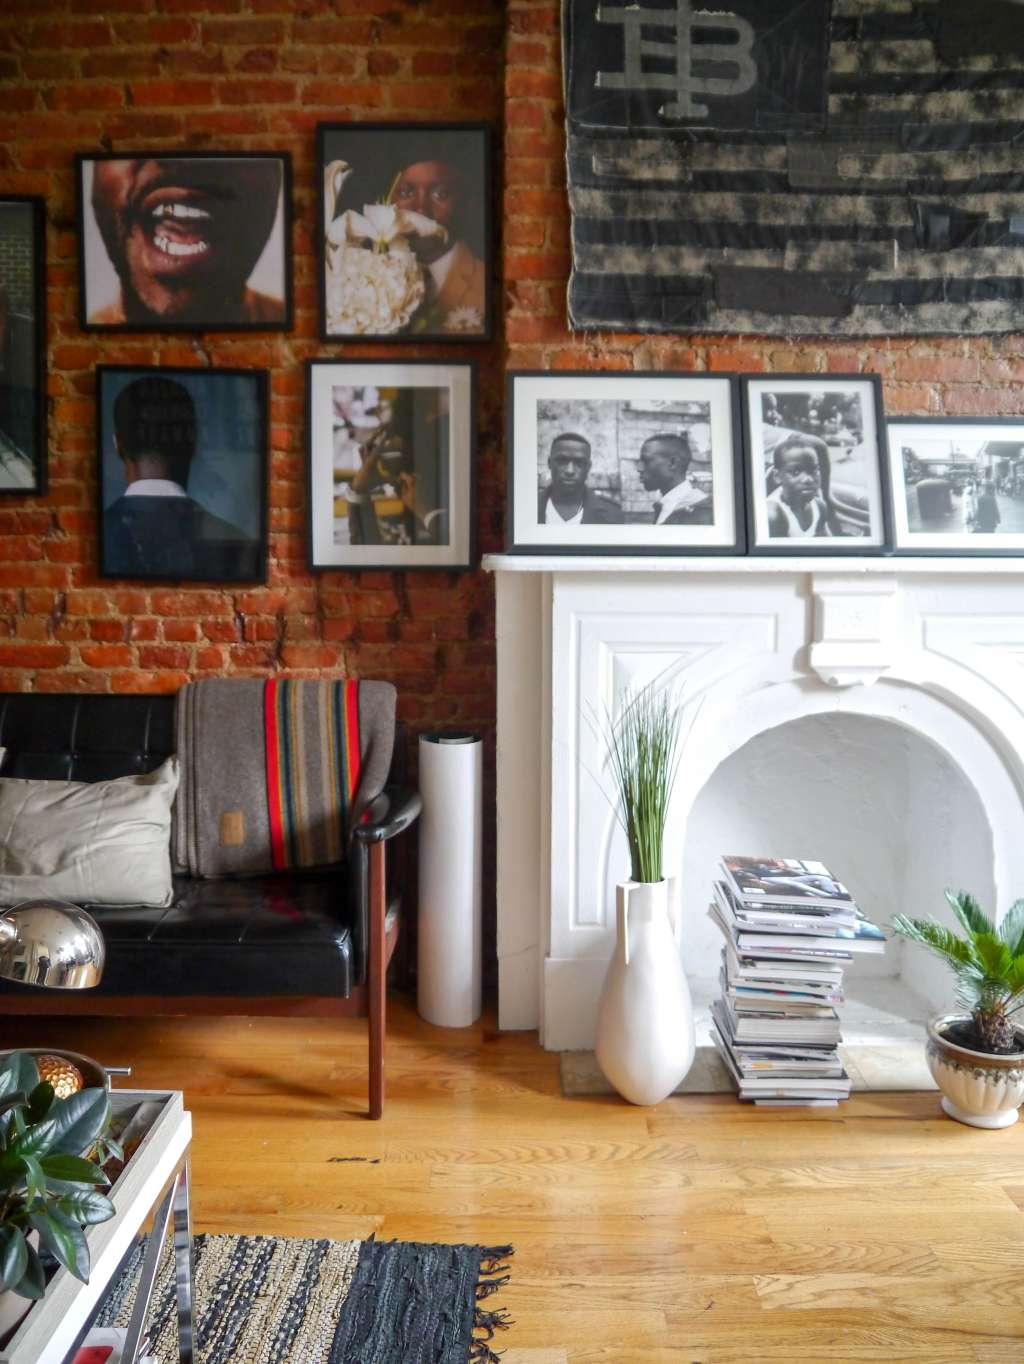 Prints Charming: 14 Truly Fabulous Online Sources for Affordable Photography